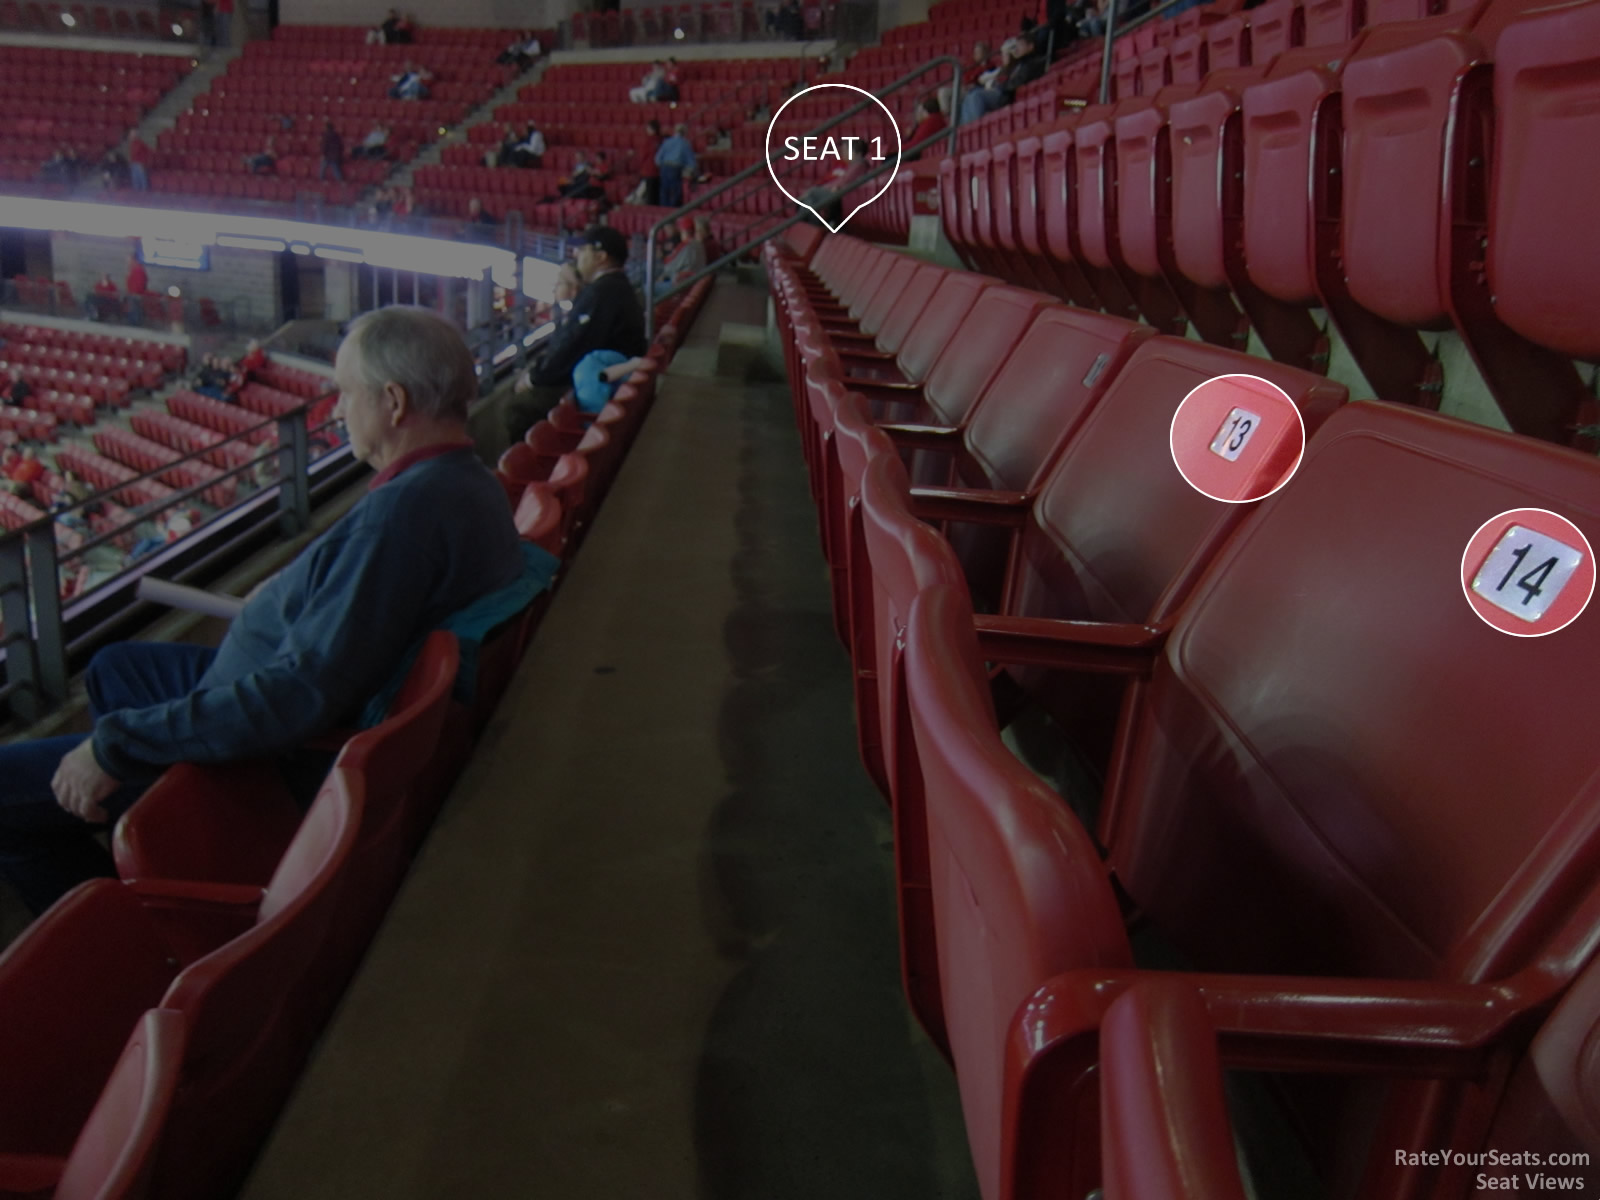 Seating progression at the Kohl Center